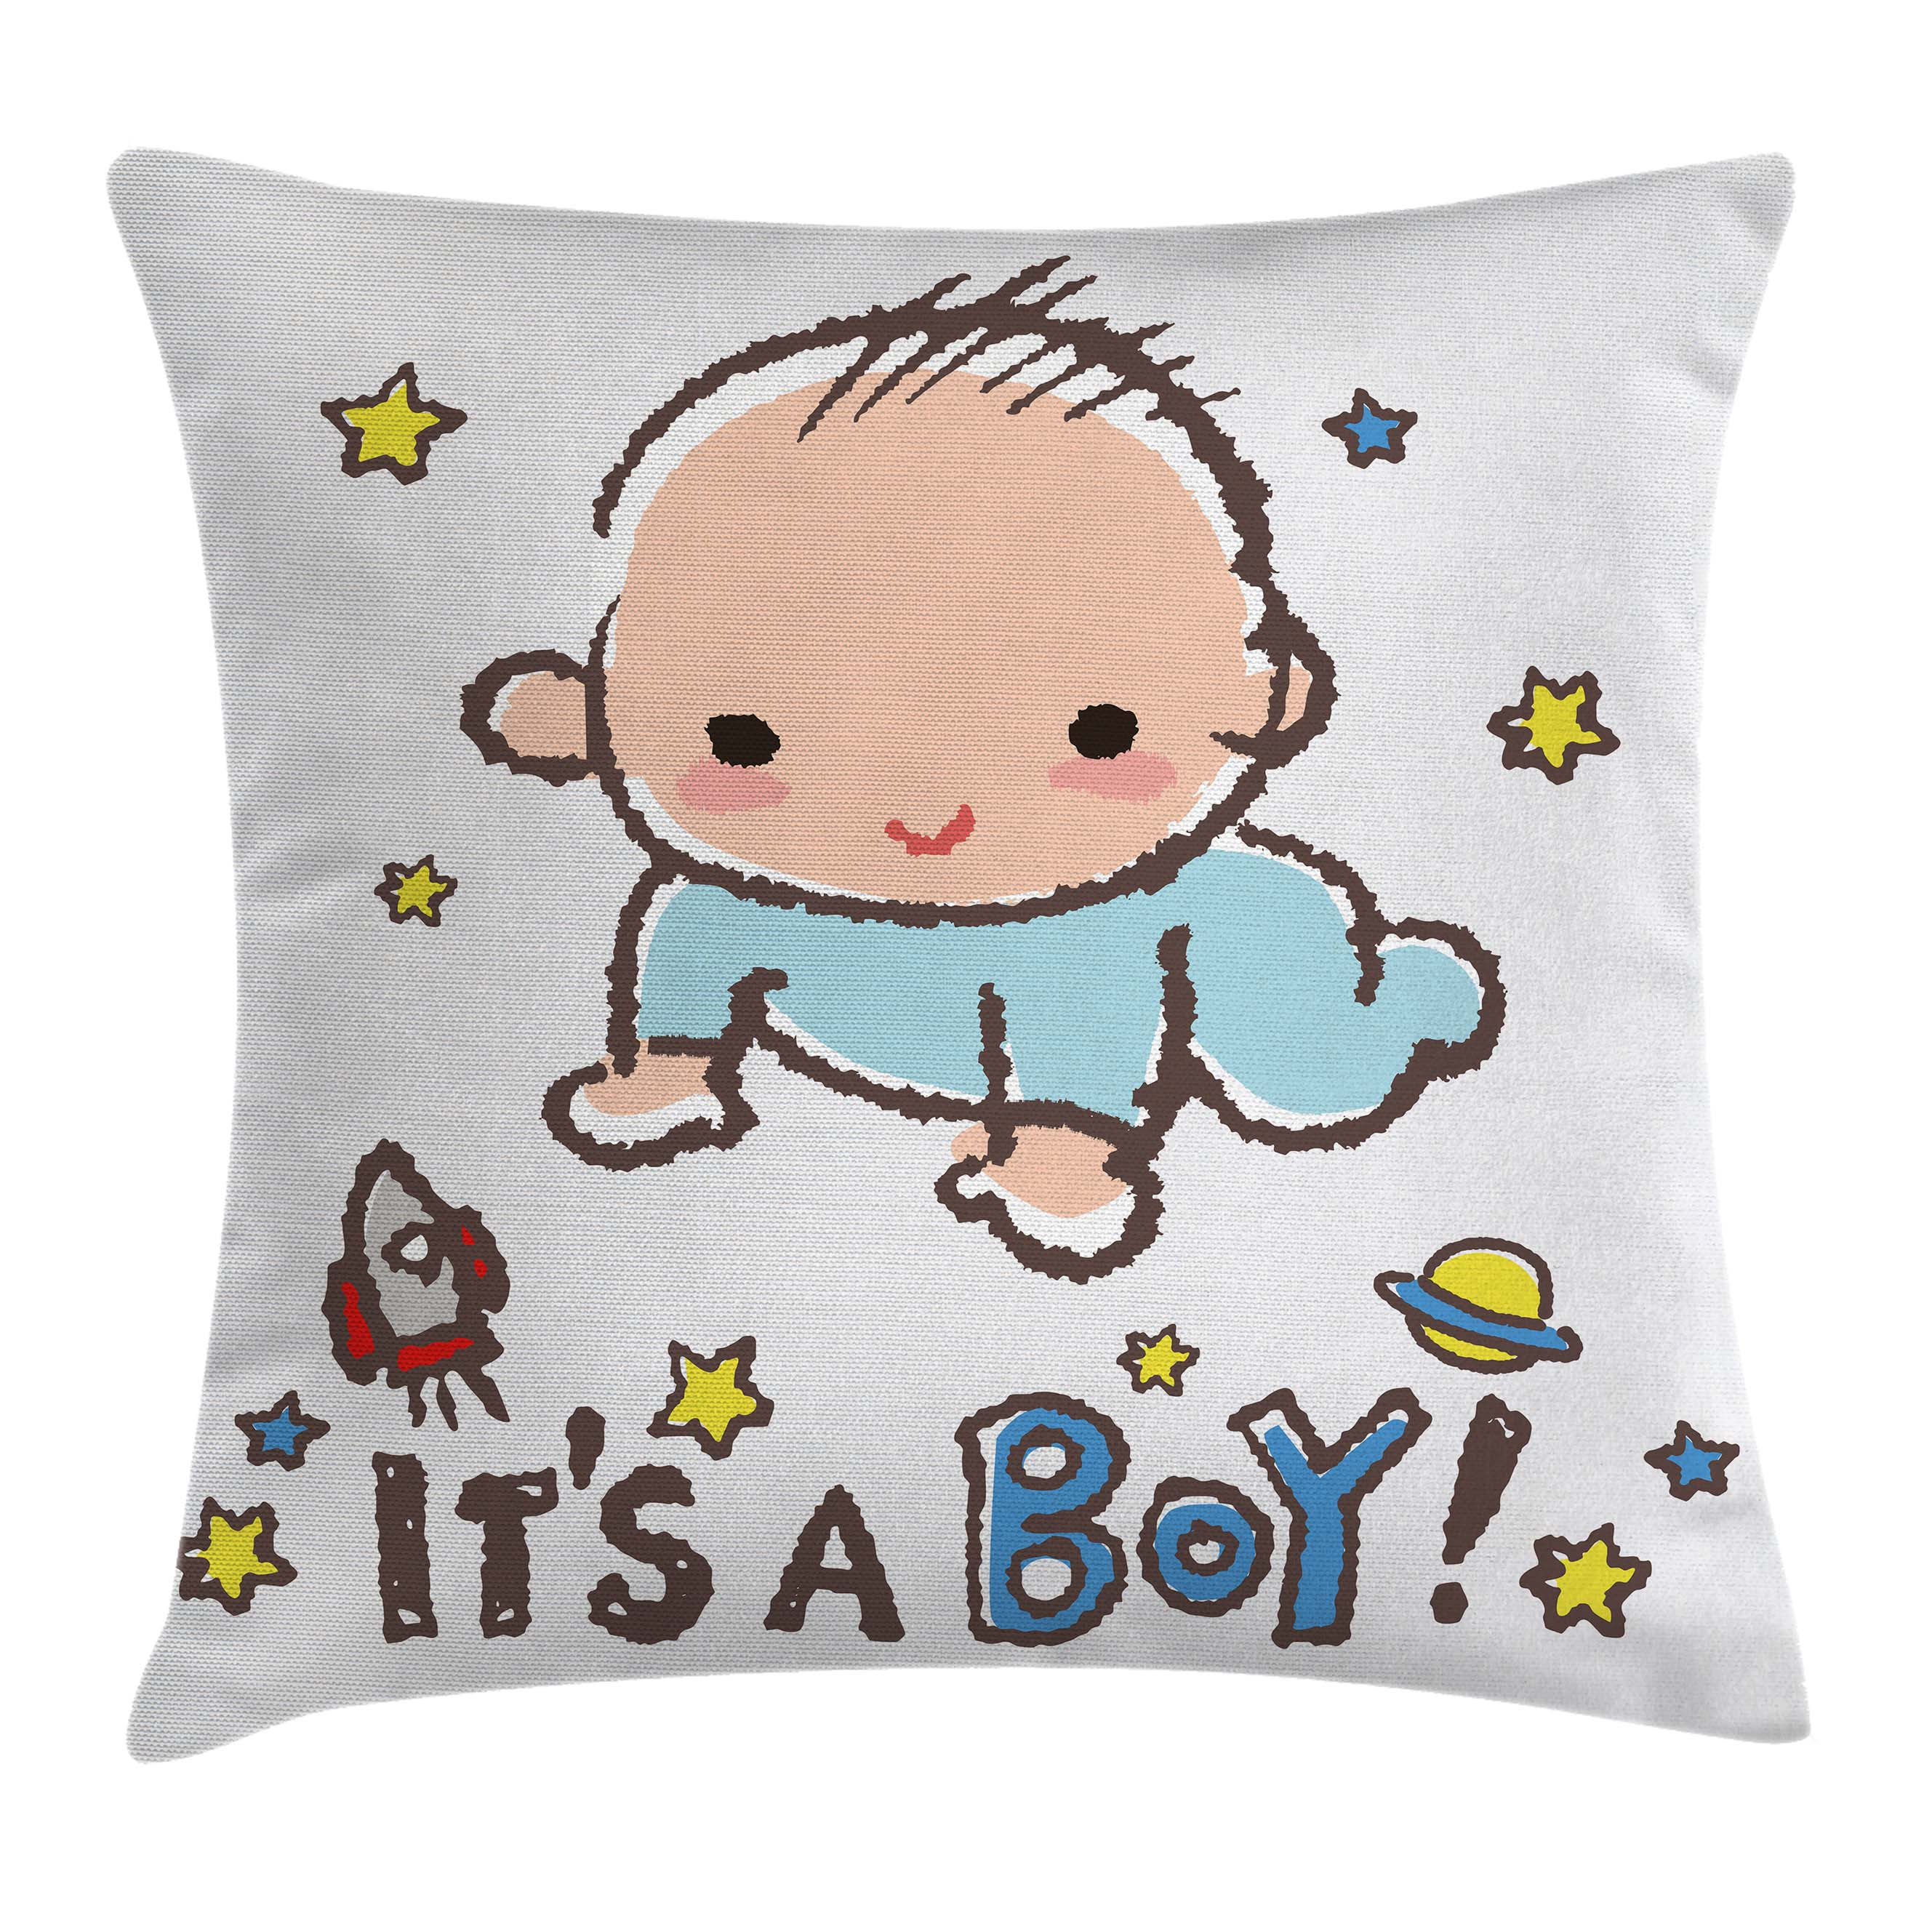 Gender Reveal Decorations Throw Pillow Cushion Cover, Little Baby Boy Smiling with Stars Rocket Space Kid Artsy Cartoon, Decorative Square Accent Pillow Case, 16 X 16 Inches, Multicolor, by Ambesonne